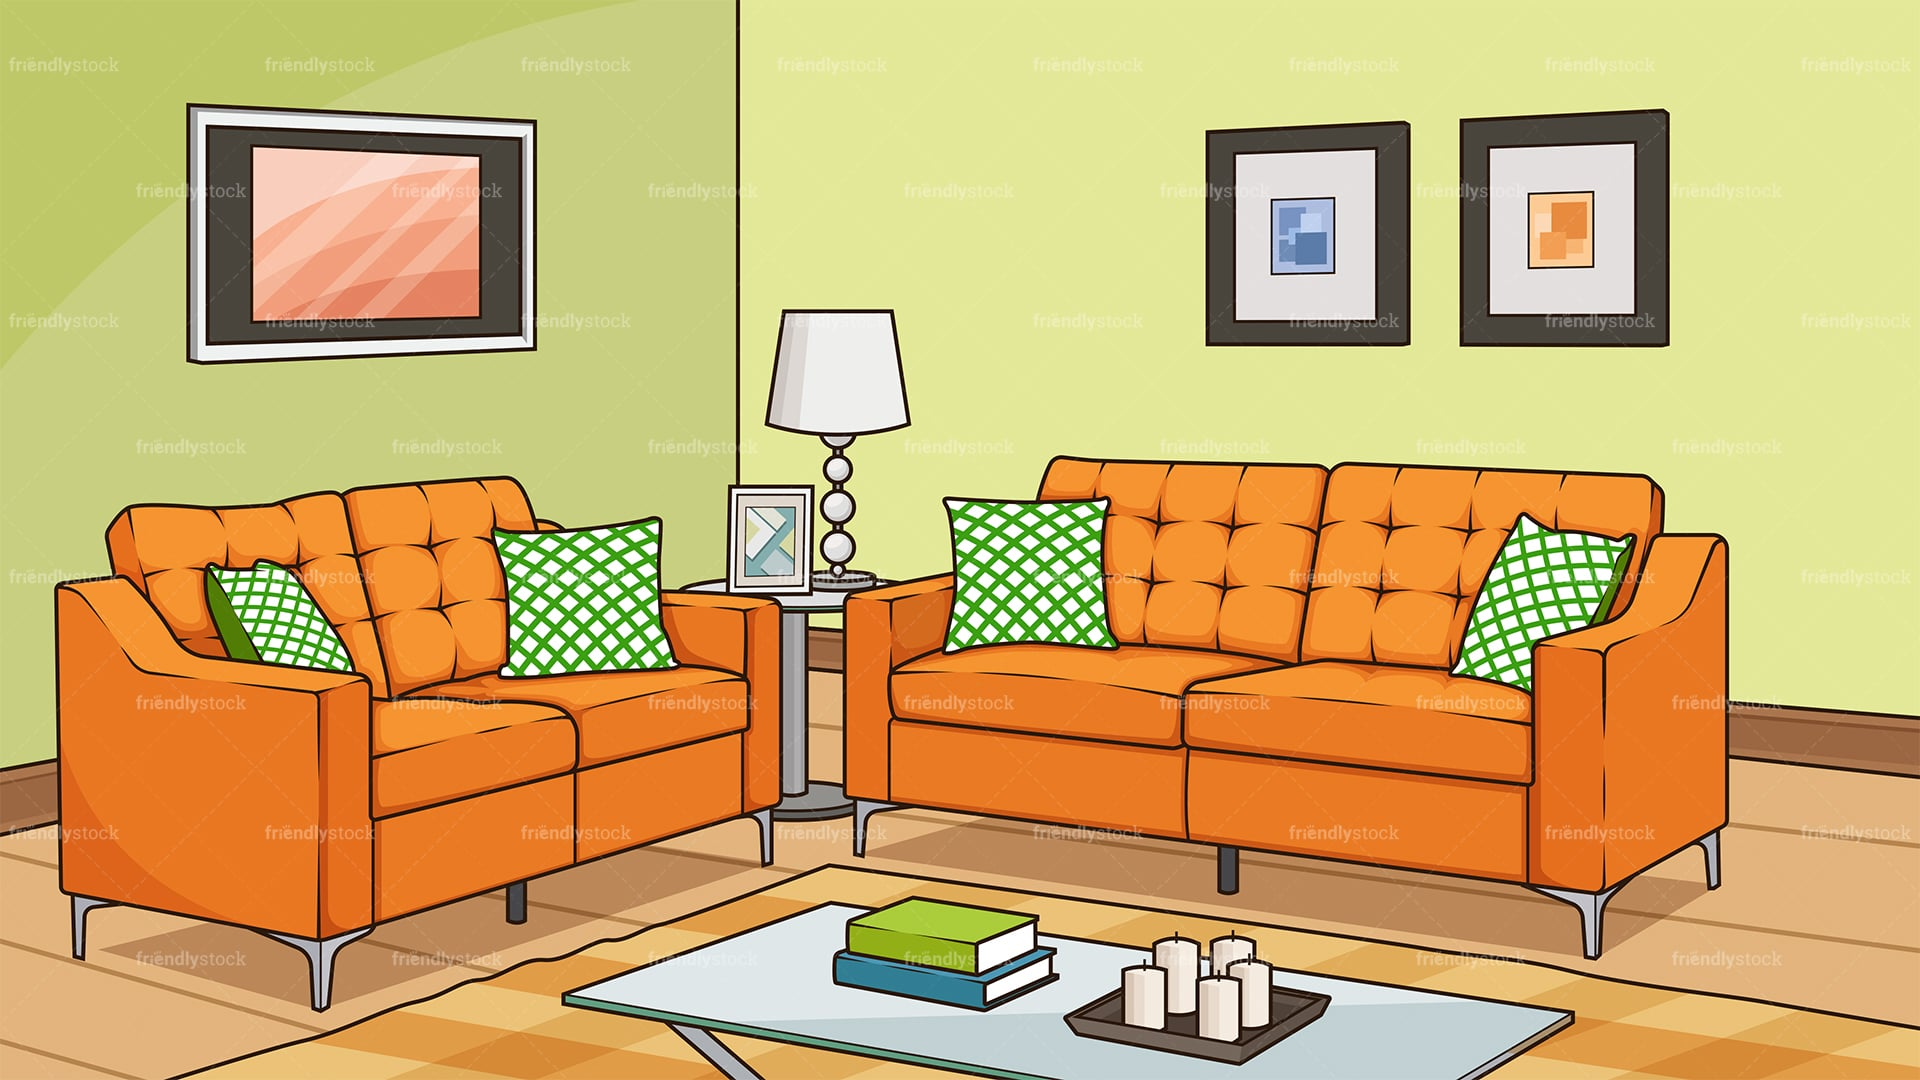 Living Room With Sofa Background Cartoon Vector Clipart Friendlystock